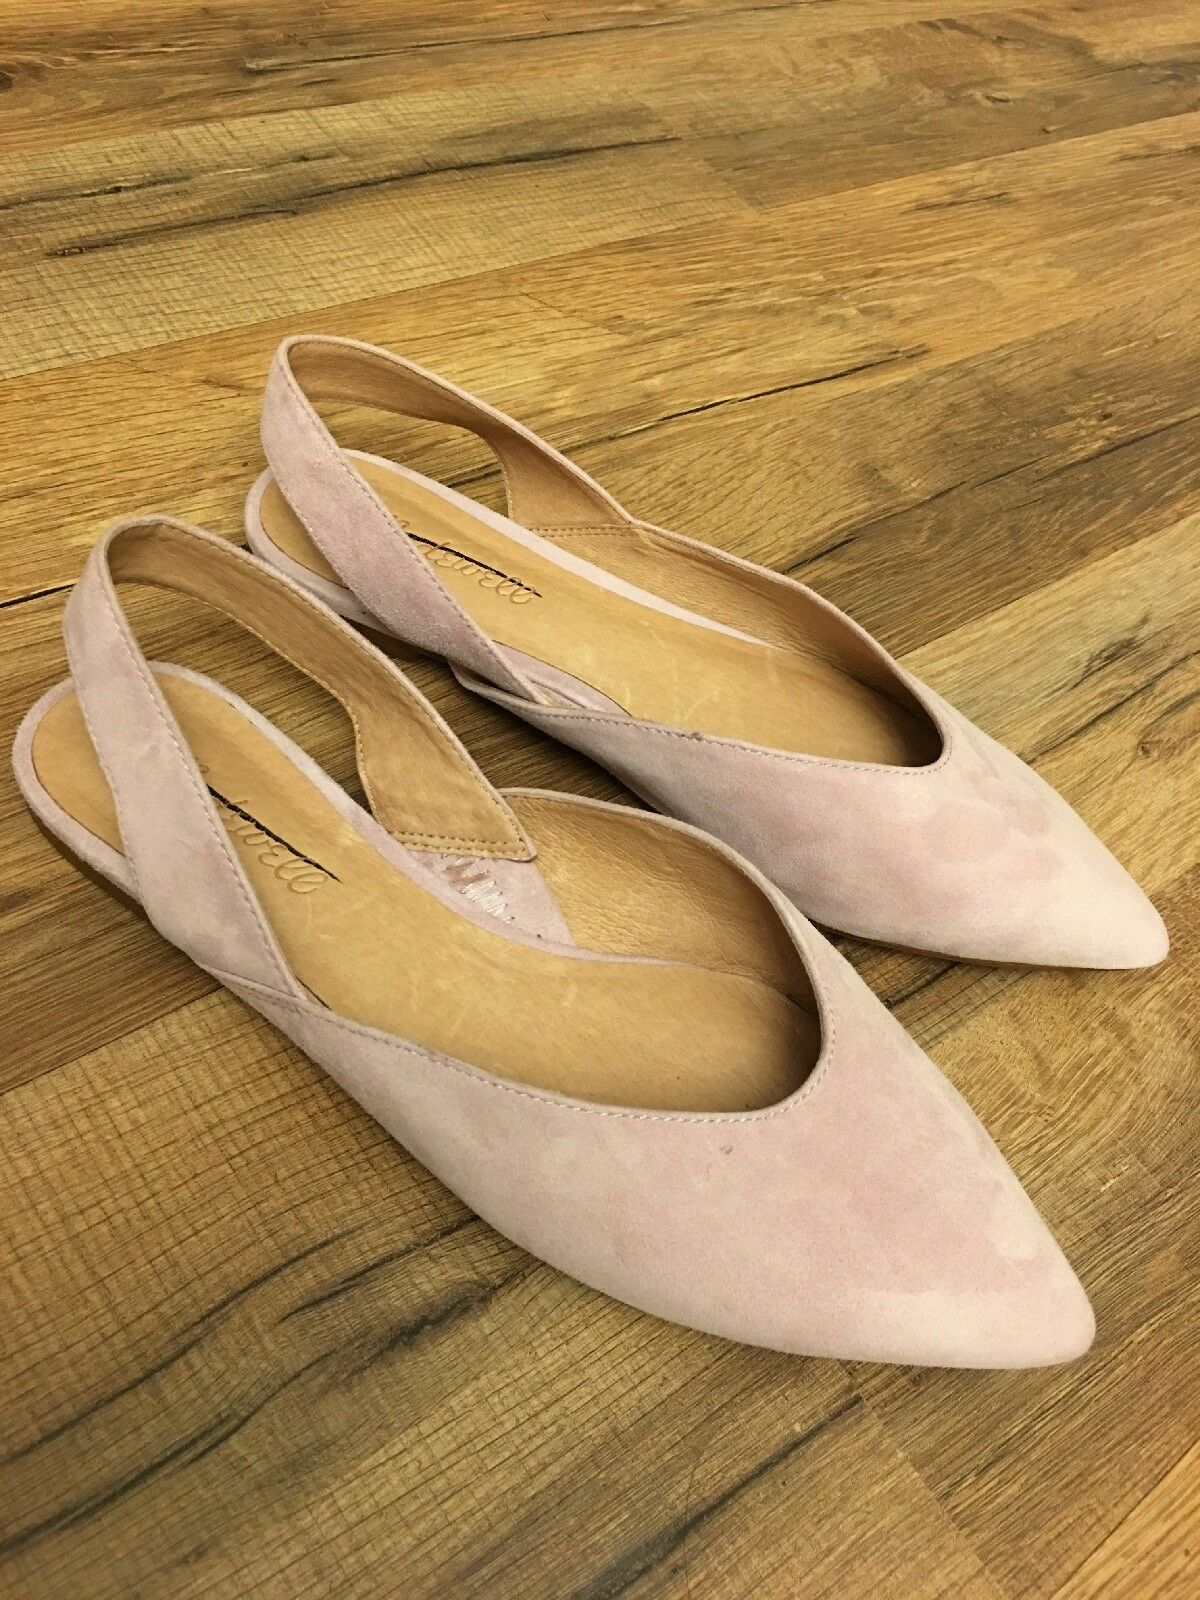 New Madewell The Ava Slingback Flat in Suede Antique Purple Sz 7.5 H6686